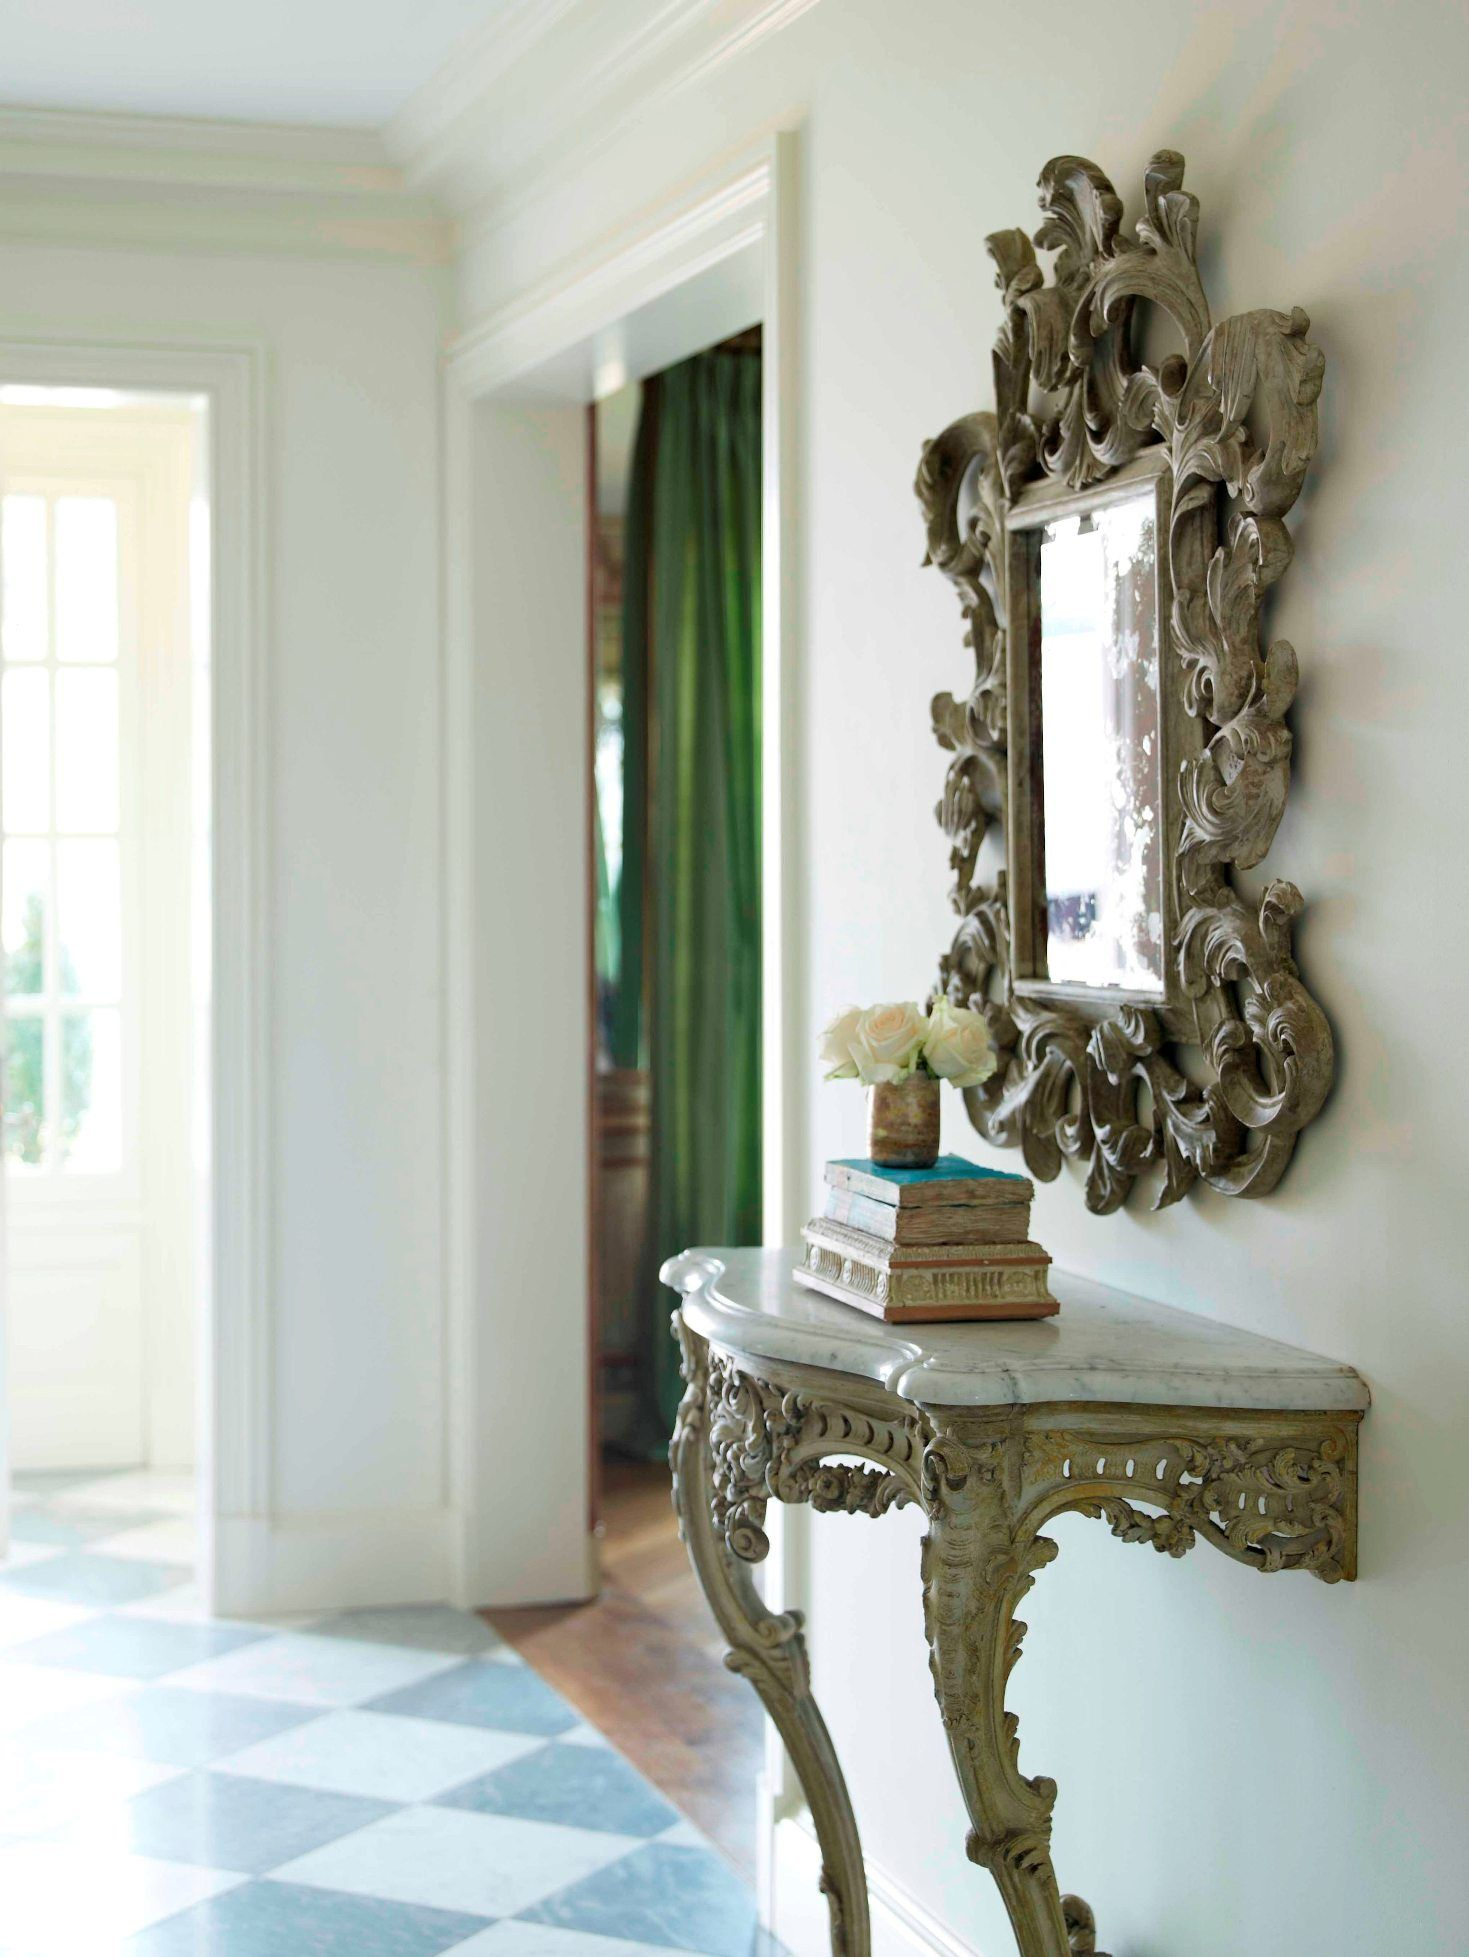 Outstanding Foyer Foyer Mirror French Interiordesign Dallas Texas Home Interior And Landscaping Ologienasavecom